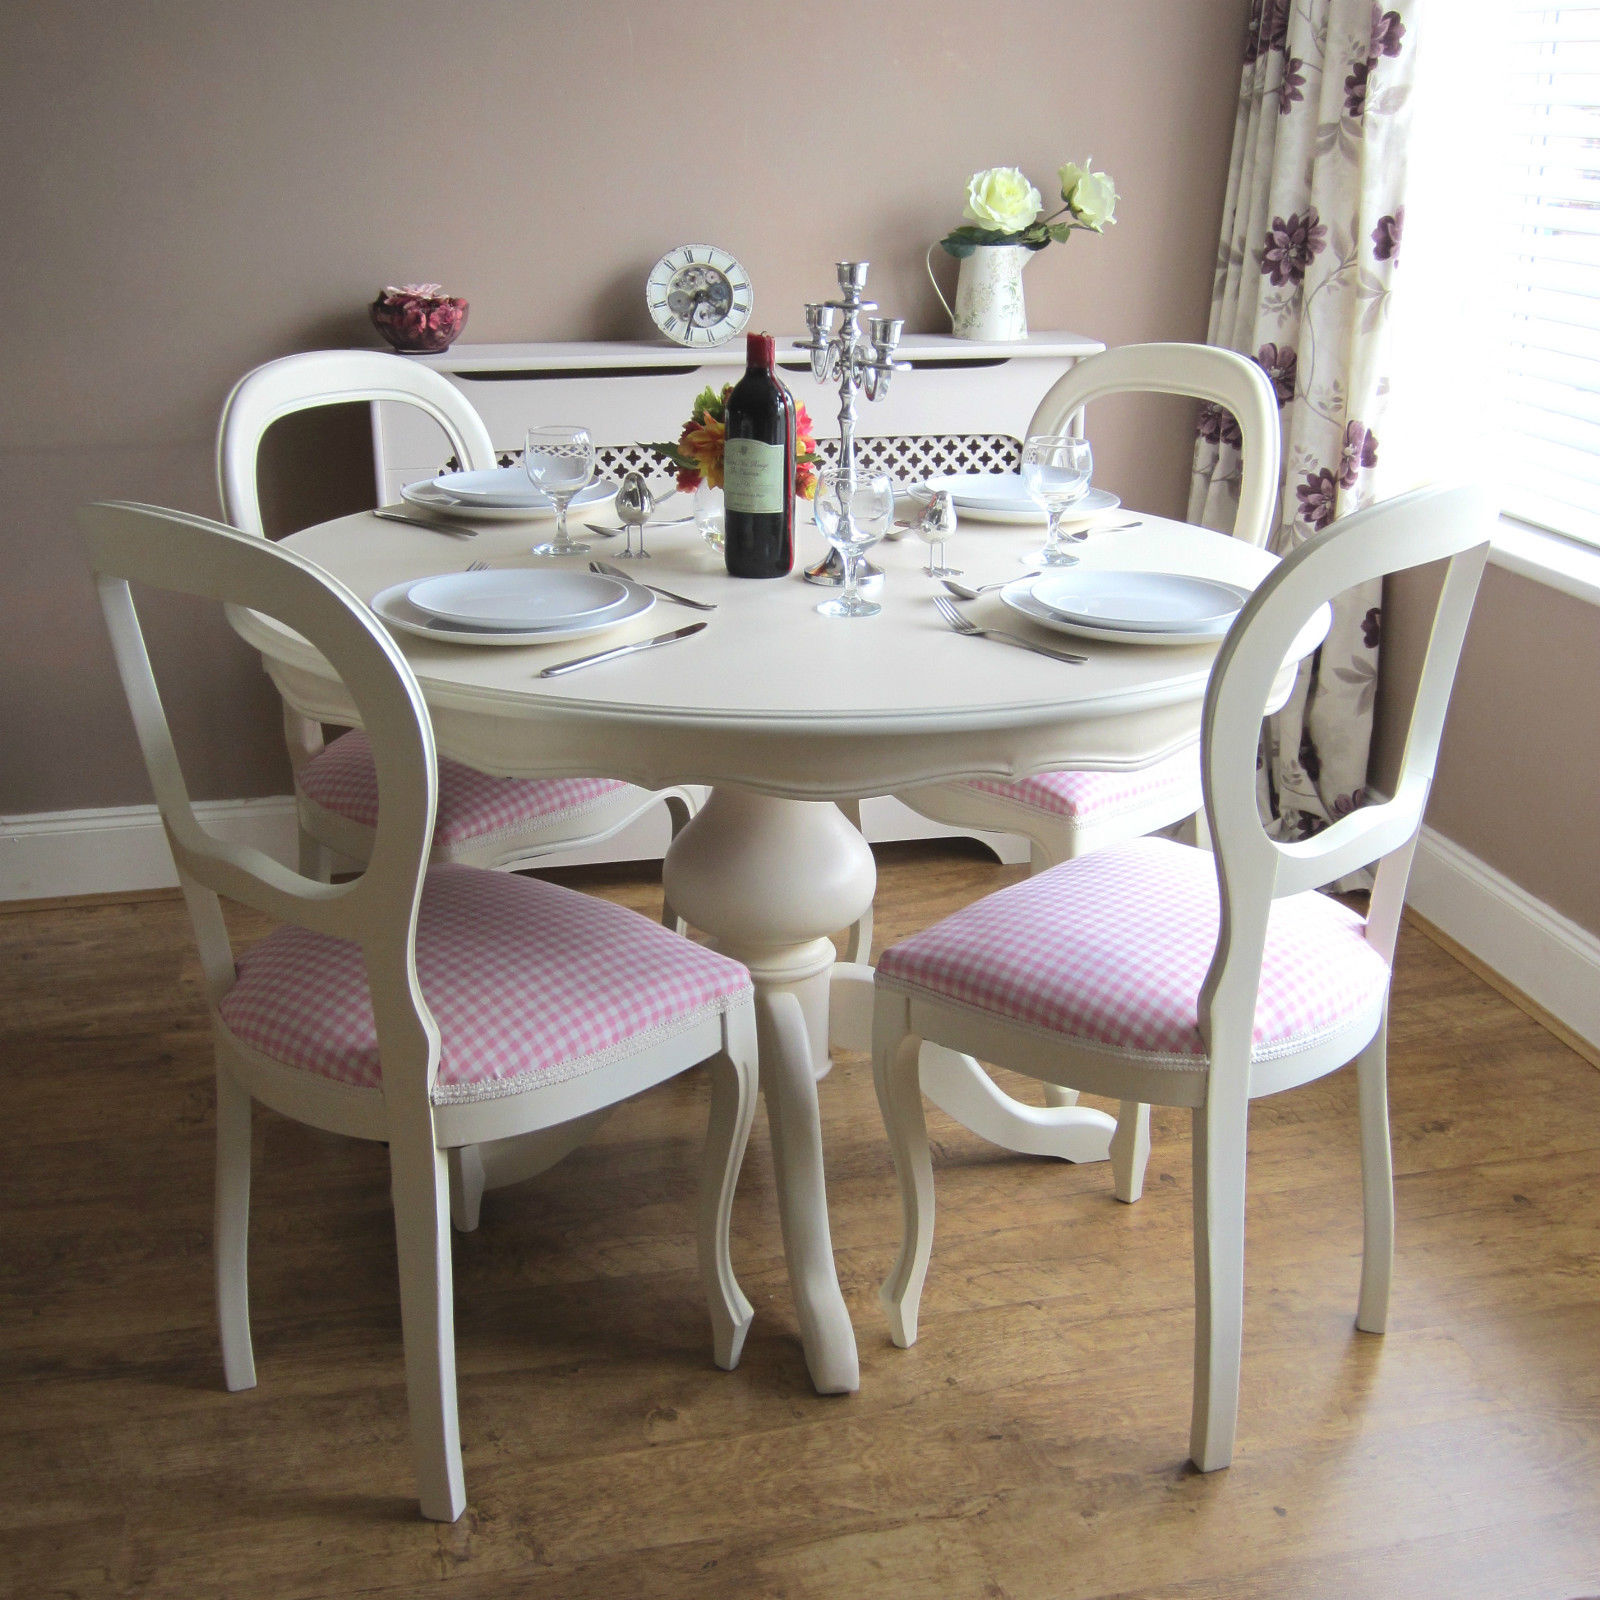 white round kitchen table - home design ideas and pictures